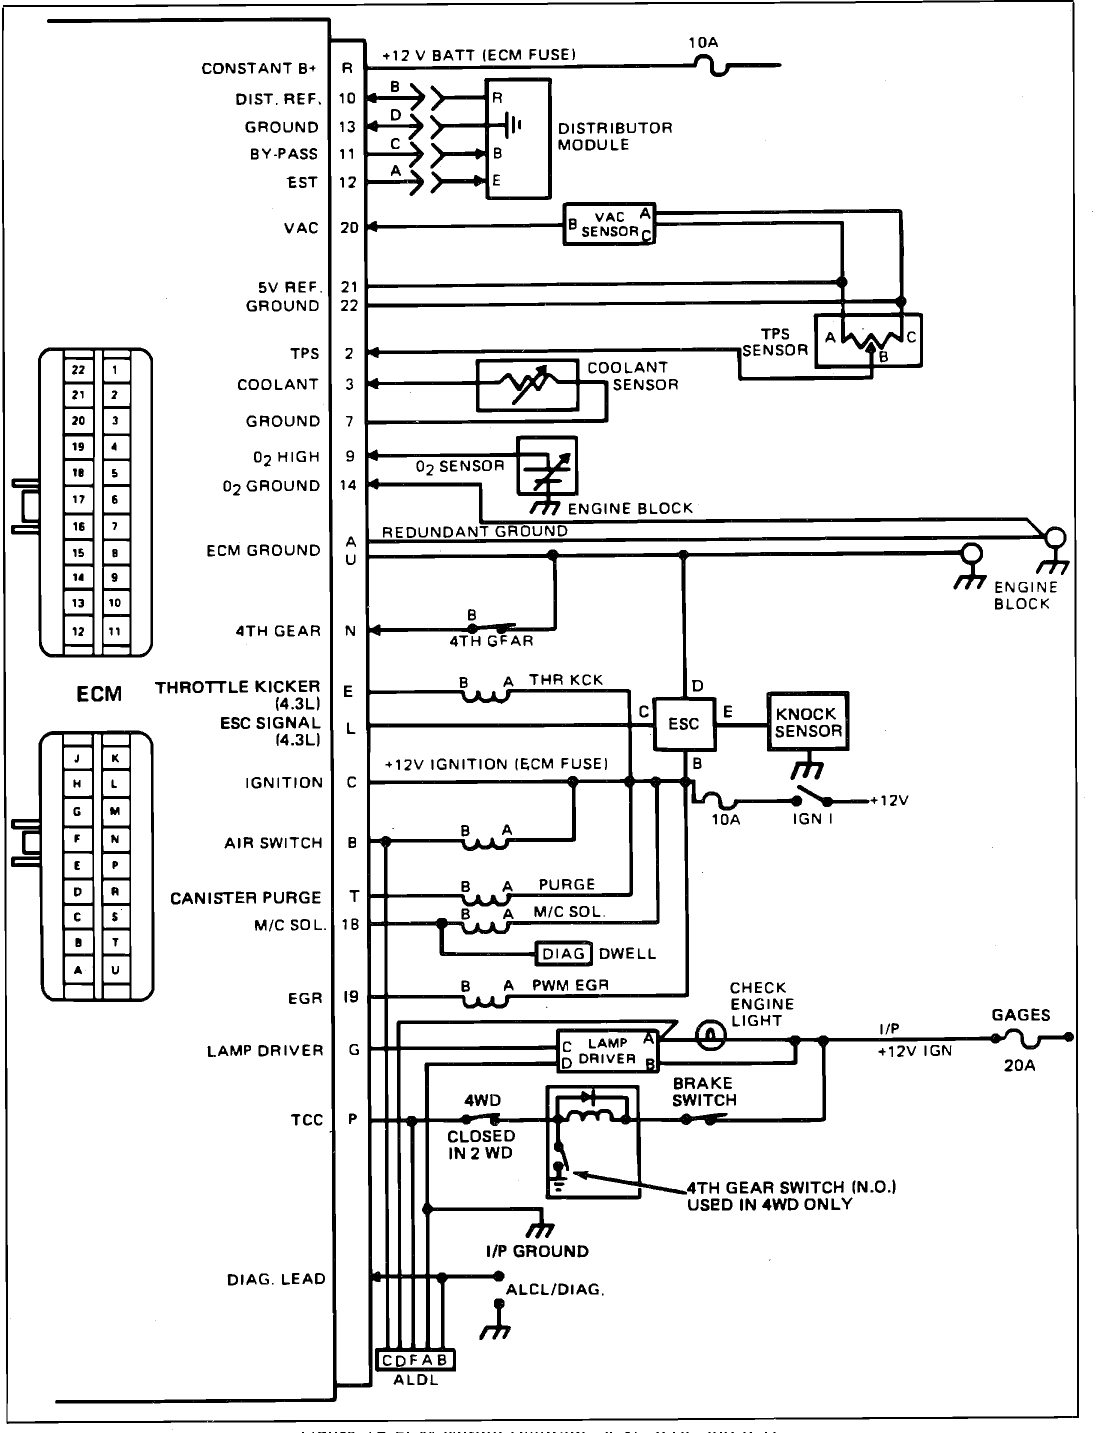 hight resolution of 1995 chevy truck fuse box wiring diagram todays 99 silverado wiring diagram 95 chevy 1500 fuse